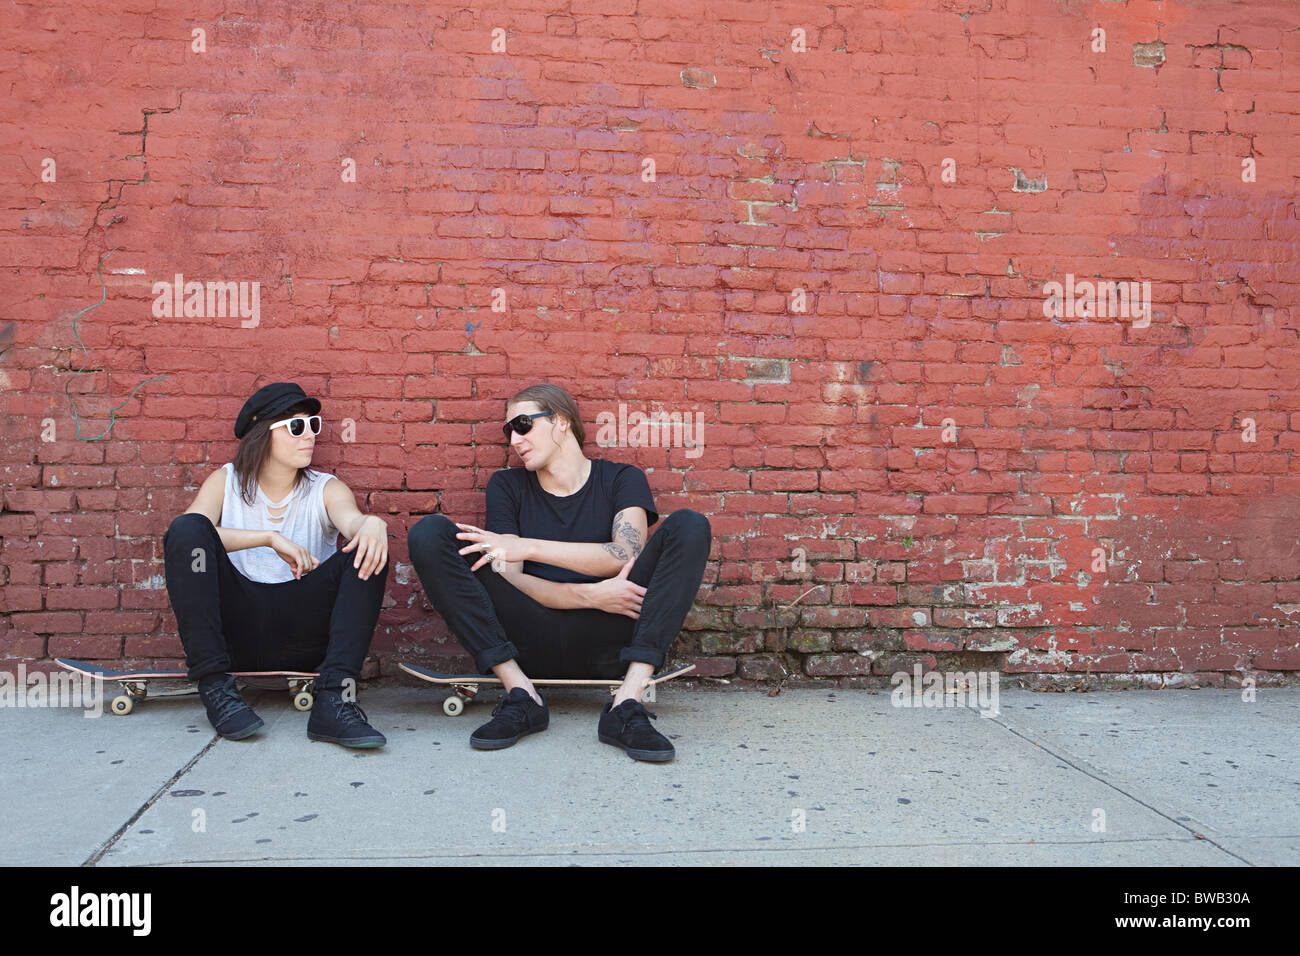 Skaters sitting on boards by wall - Stock Image